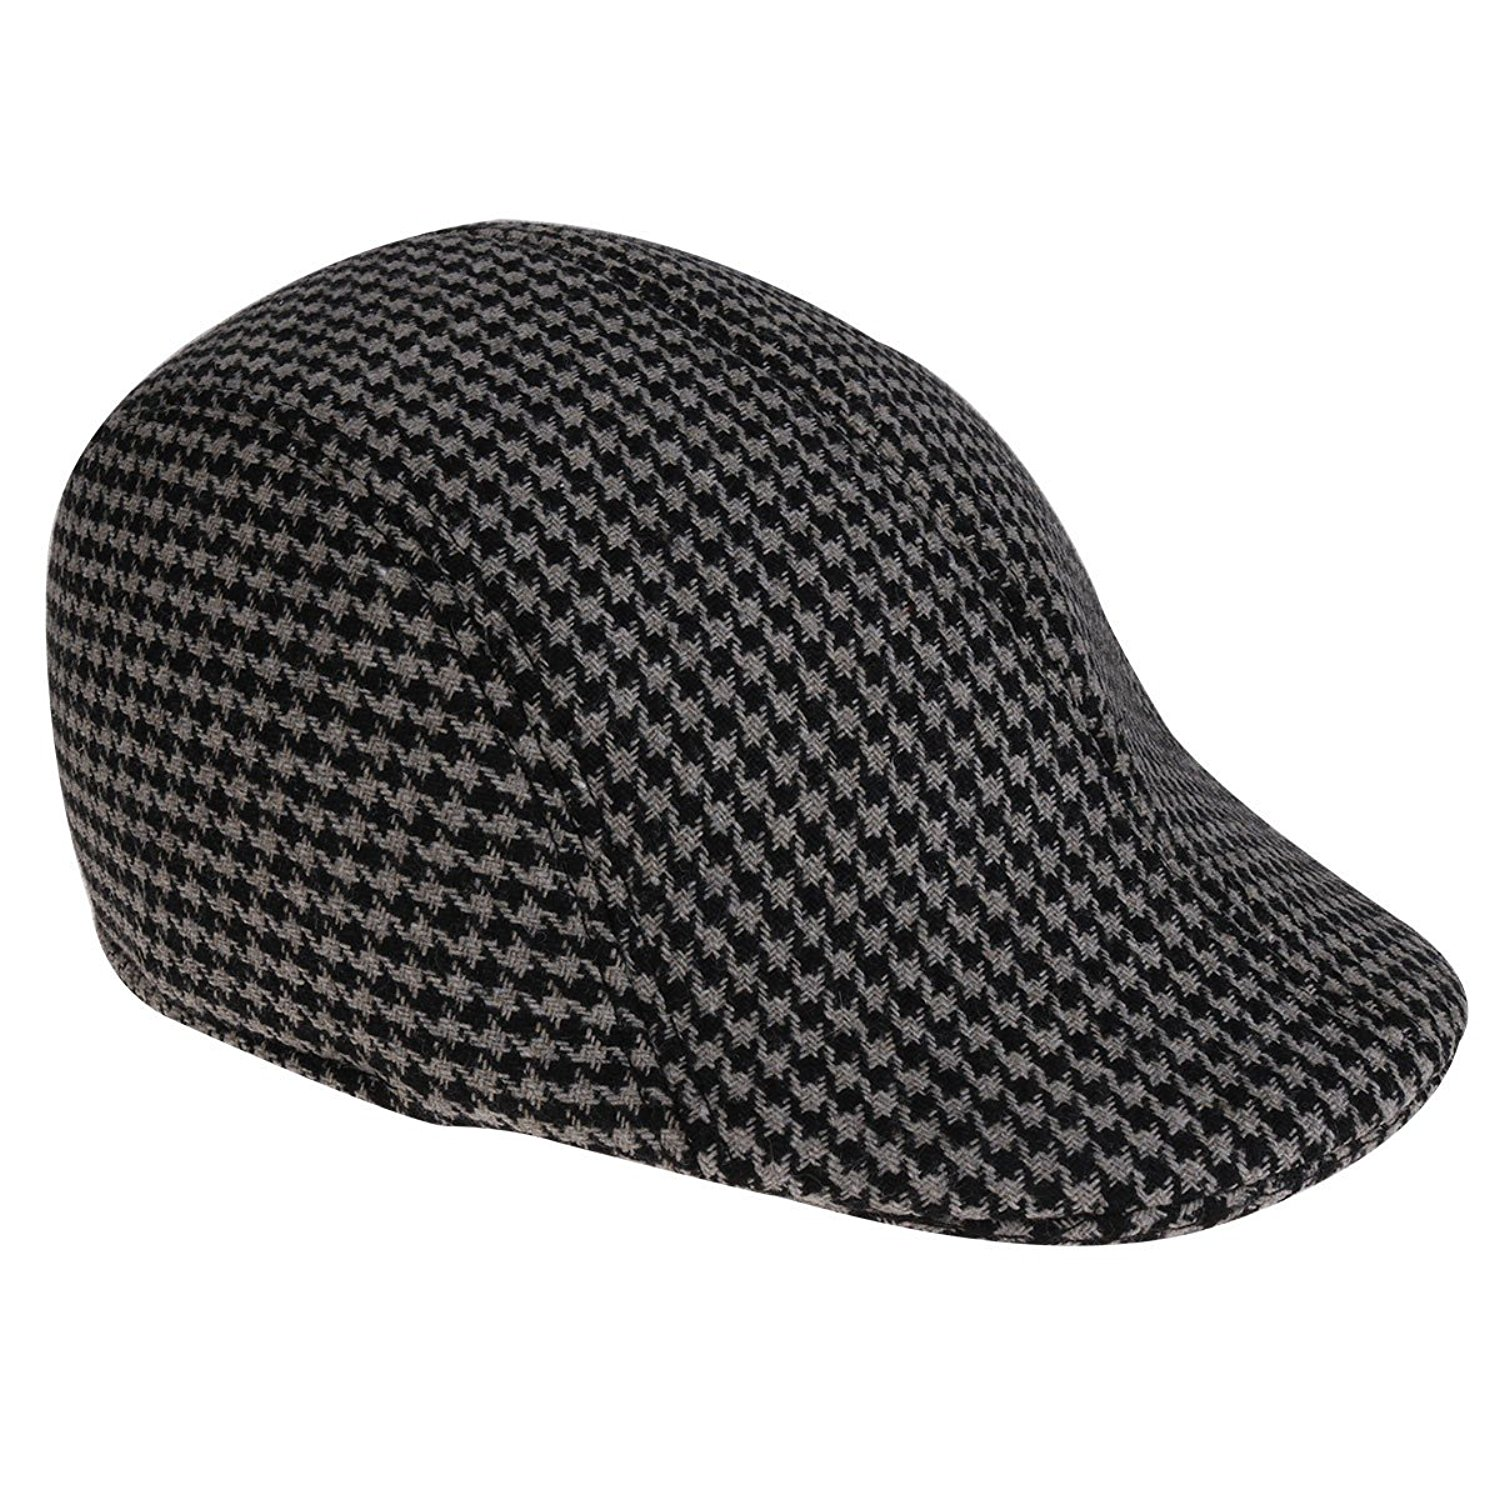 Get Quotations · TiaoBug Men s Cotton Houndstooth Pattern IVY Gatsby  newsboy Flat Cap Hunting Cabbie Hats 833909311061